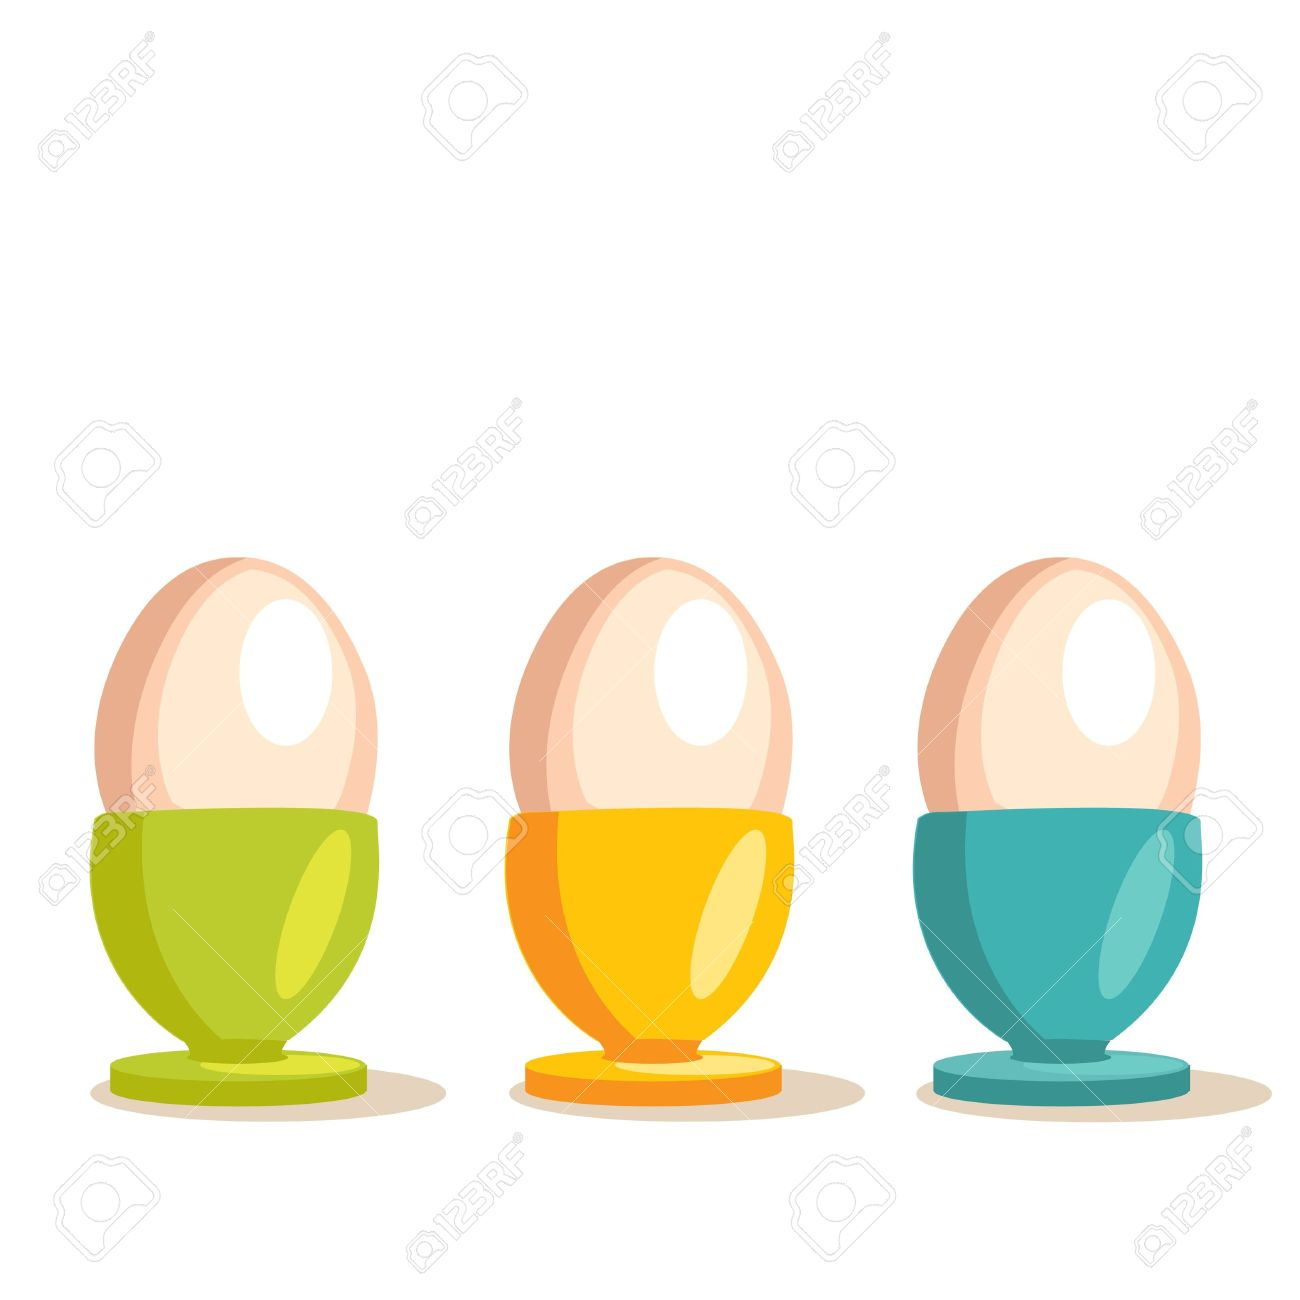 Cartoon Egg Cups Royalty Free Cliparts, Vectors, And Stock.